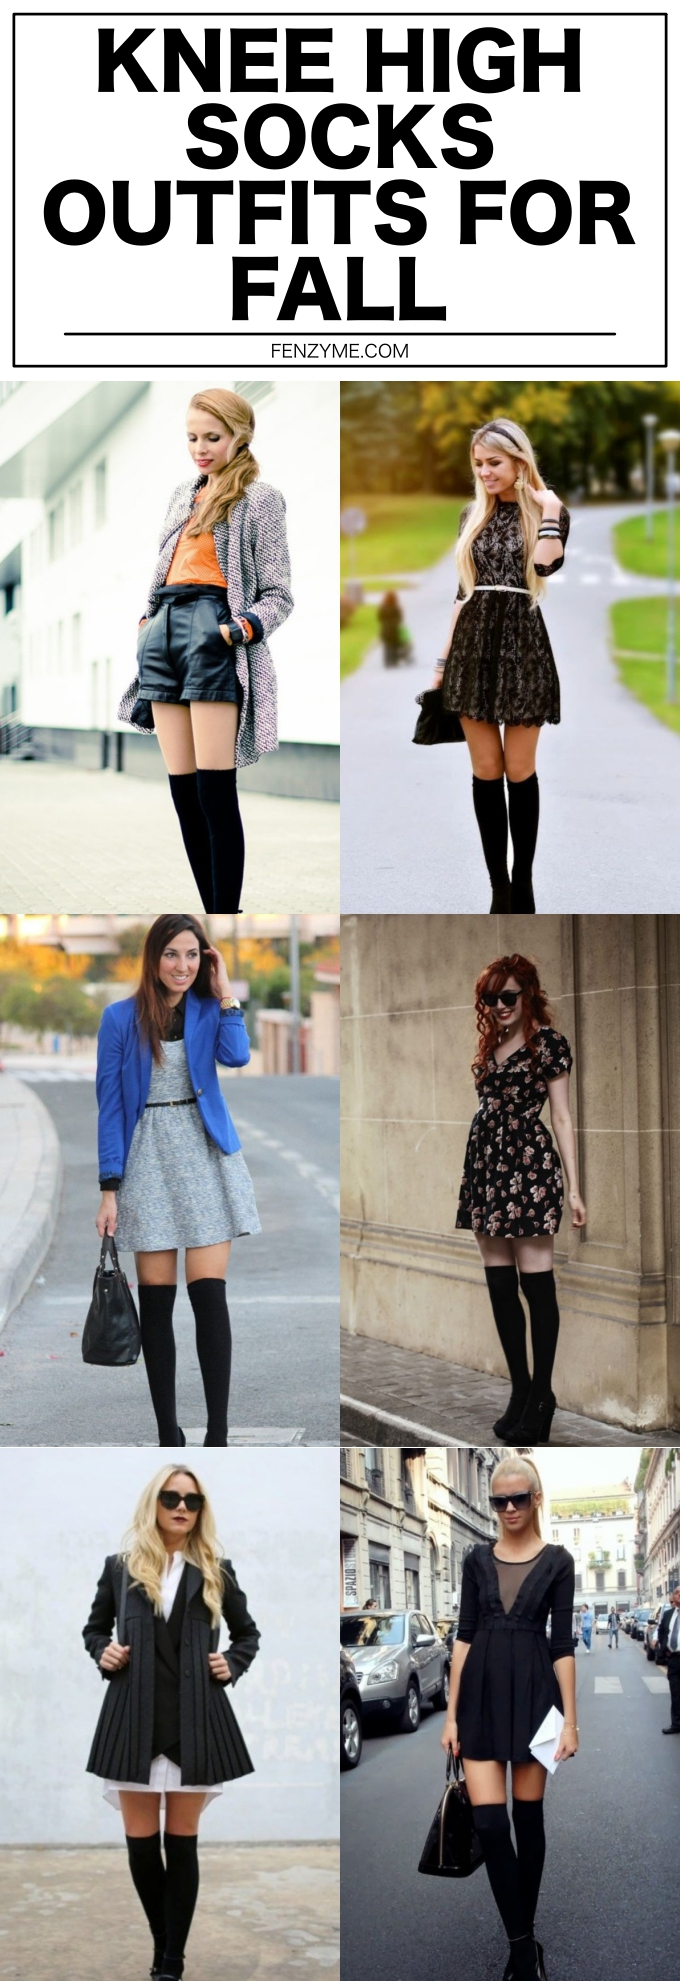 KNEE HIGH SOCKS OUTFITS